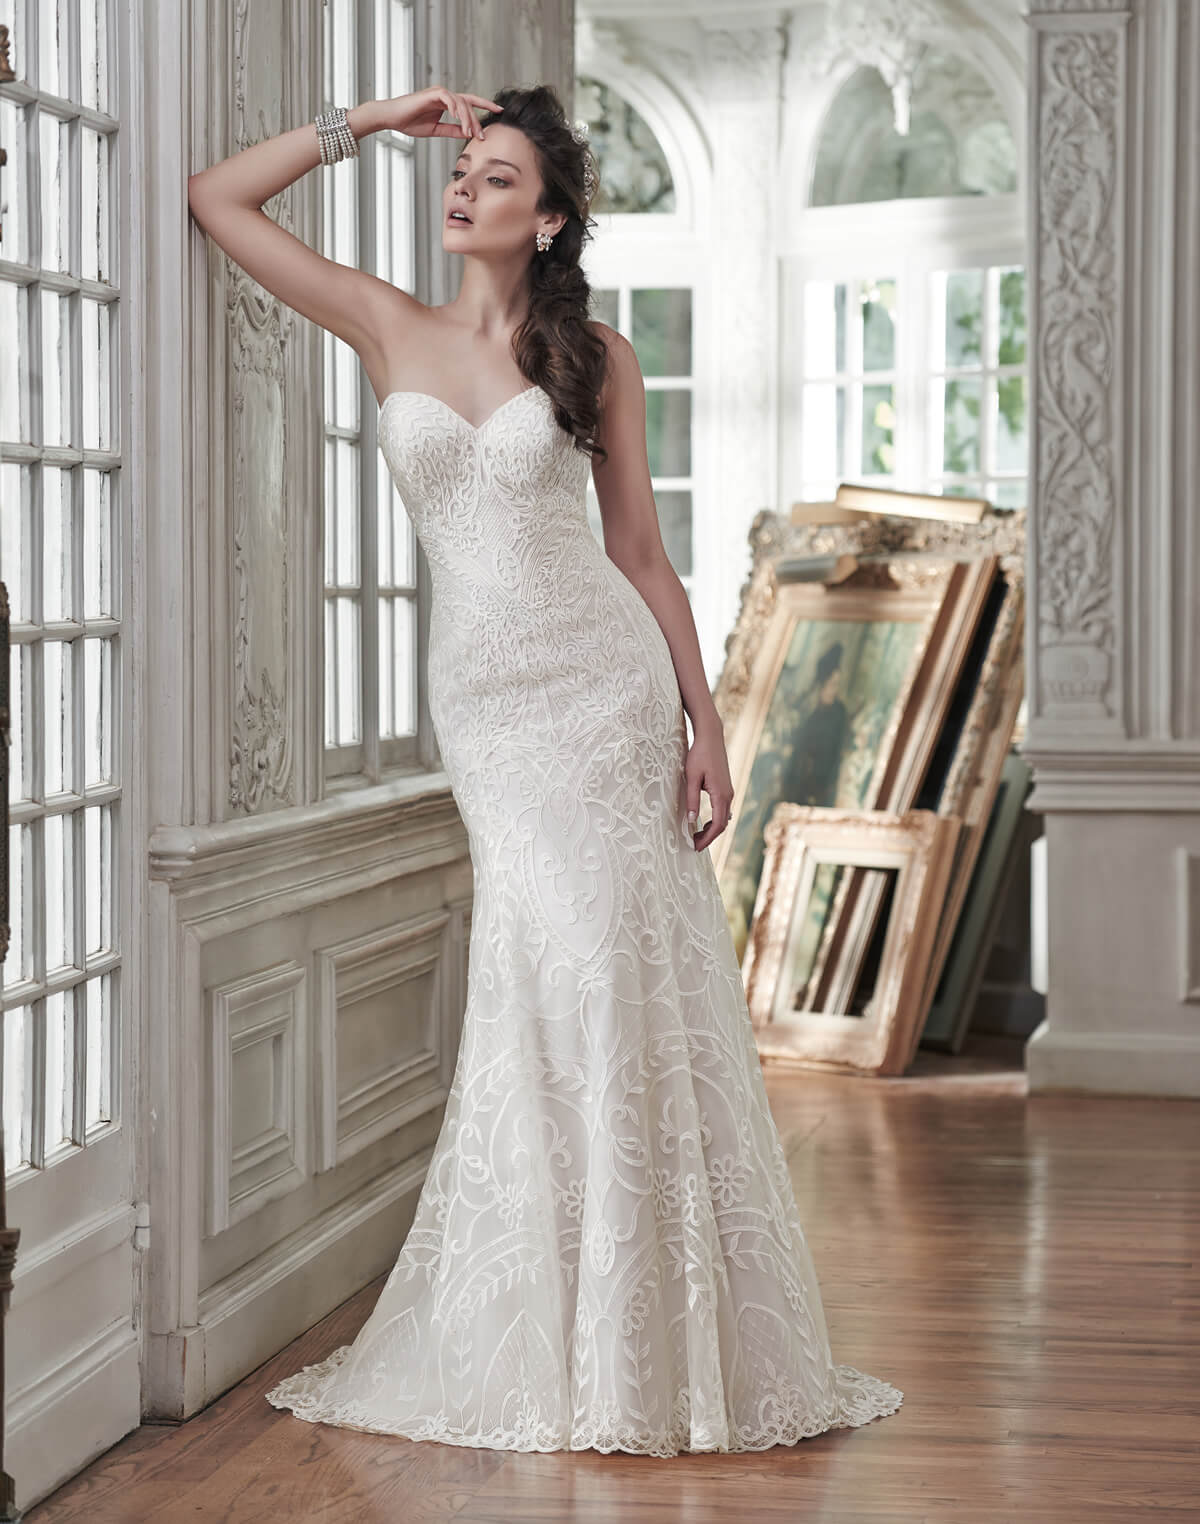 Maggie Sottero - Aracella Collection - Mirian